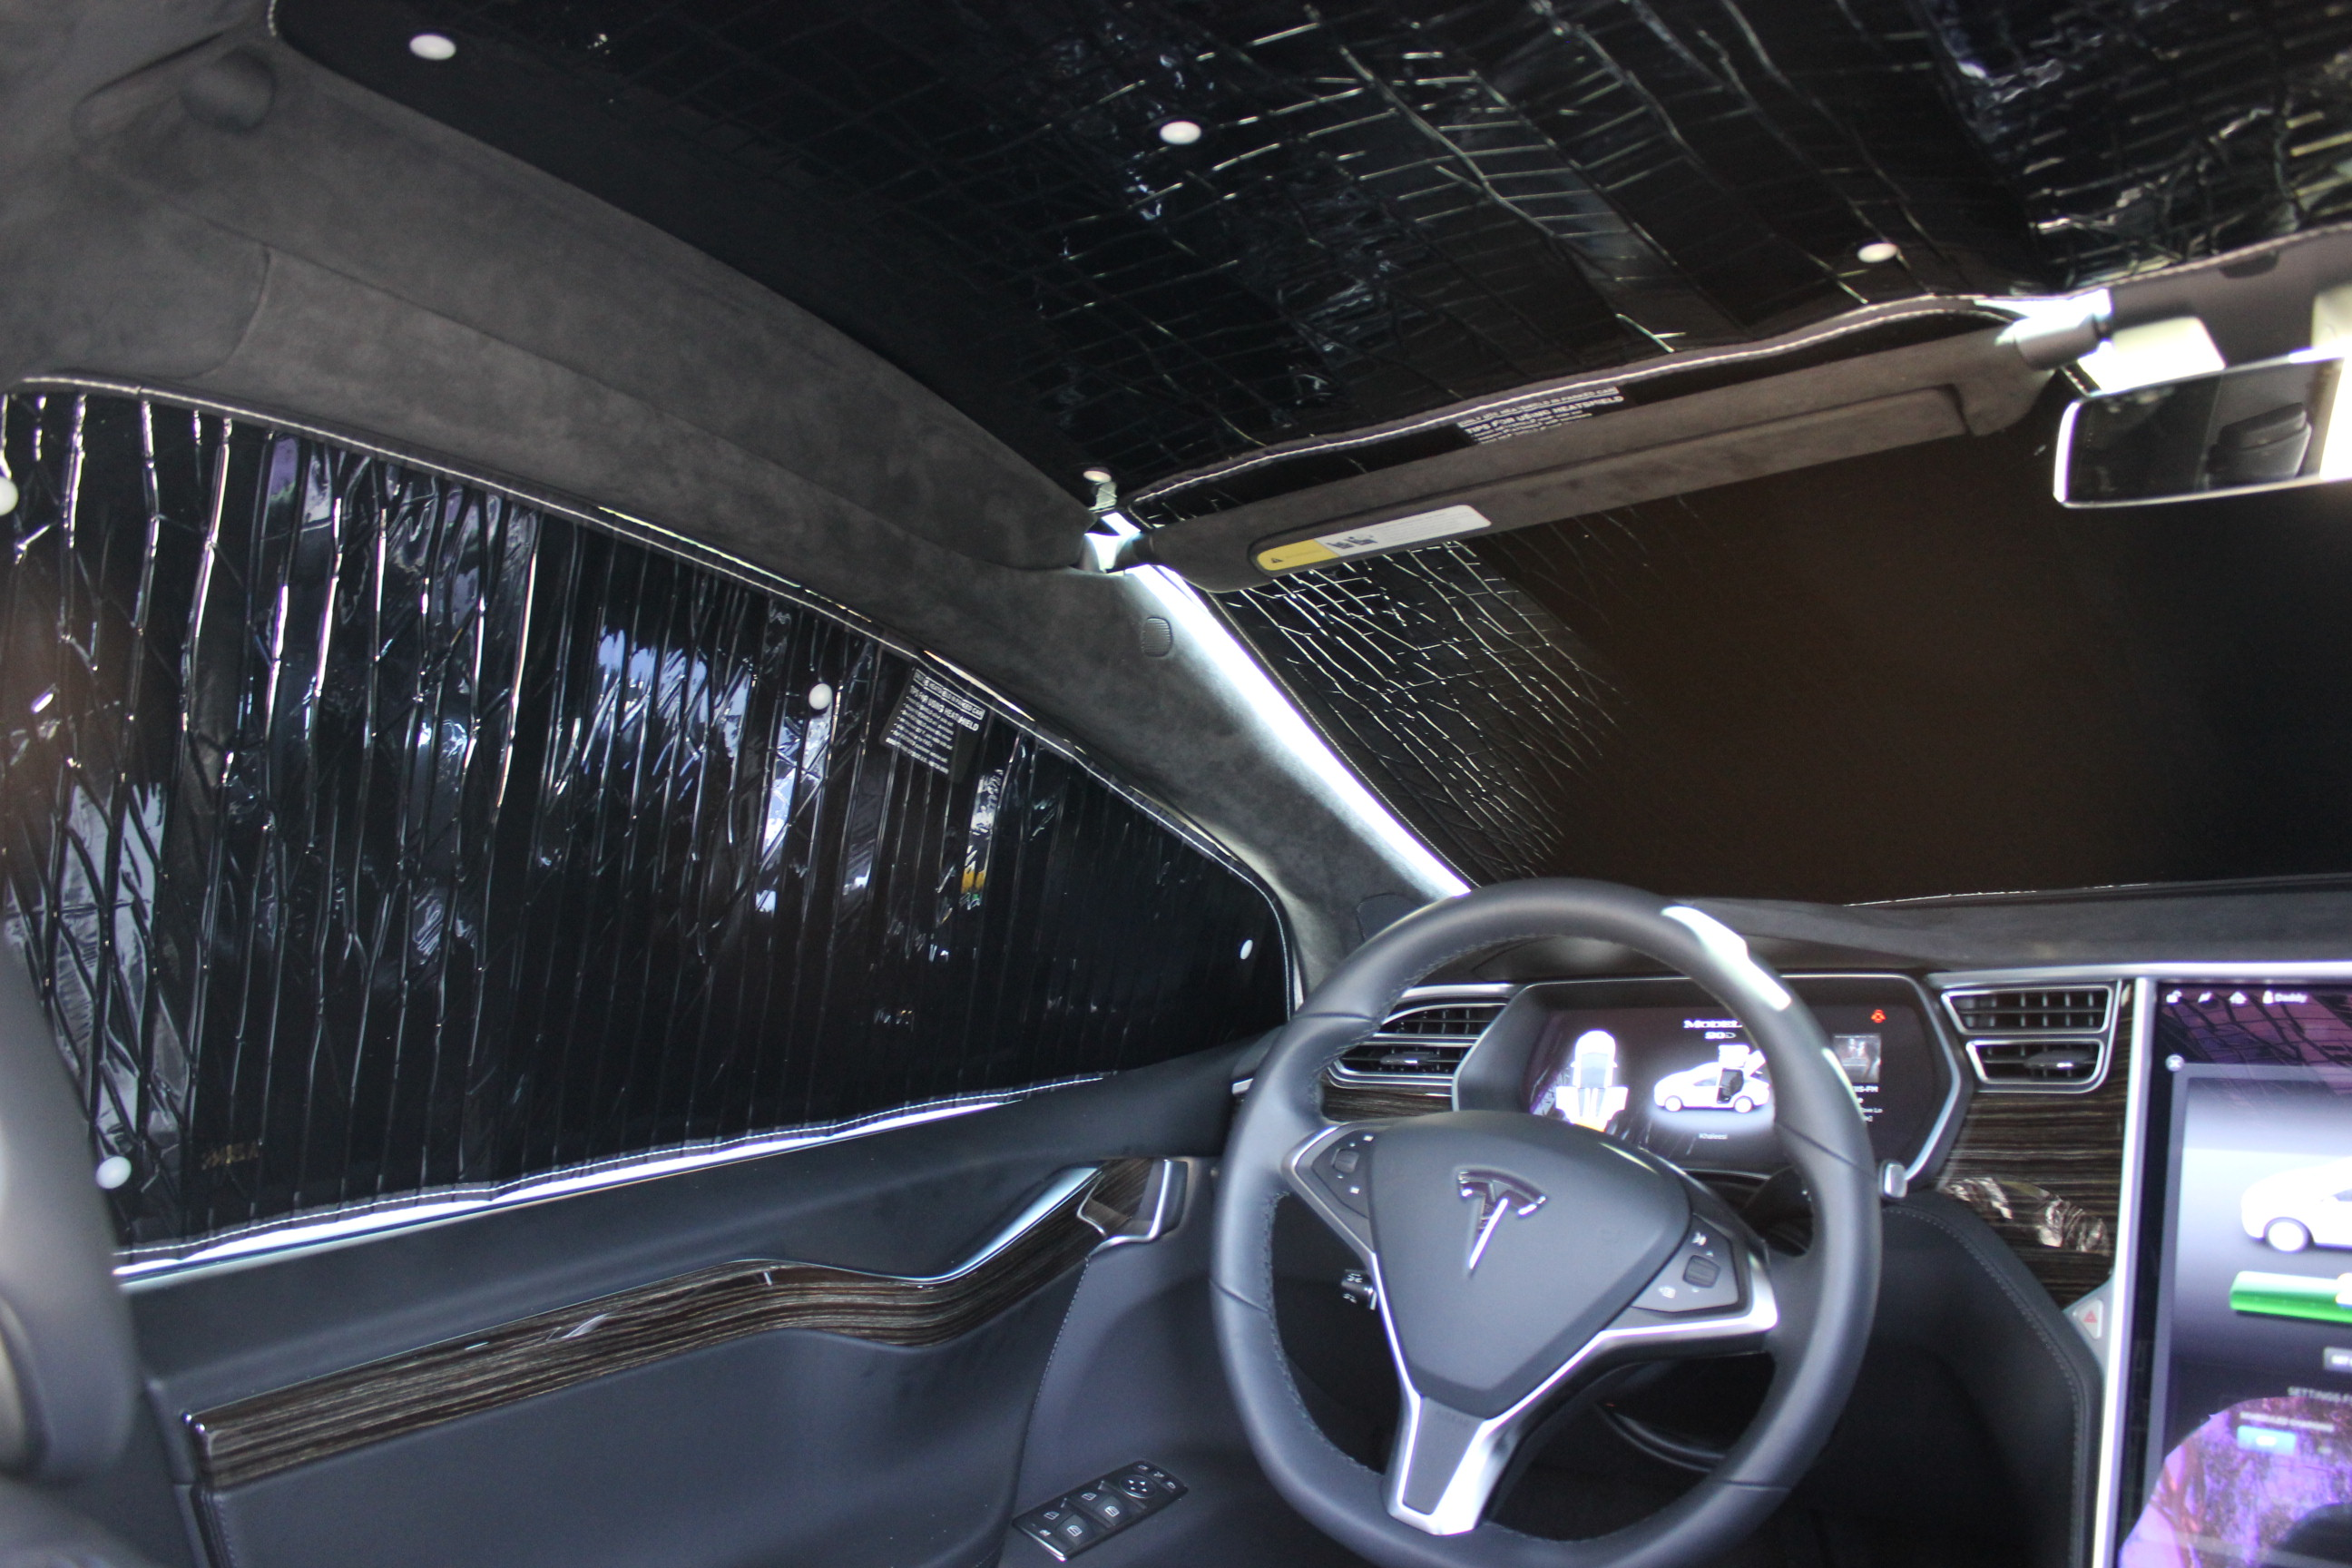 A near blackout effect with all Model X HeatShield Sunshades in place